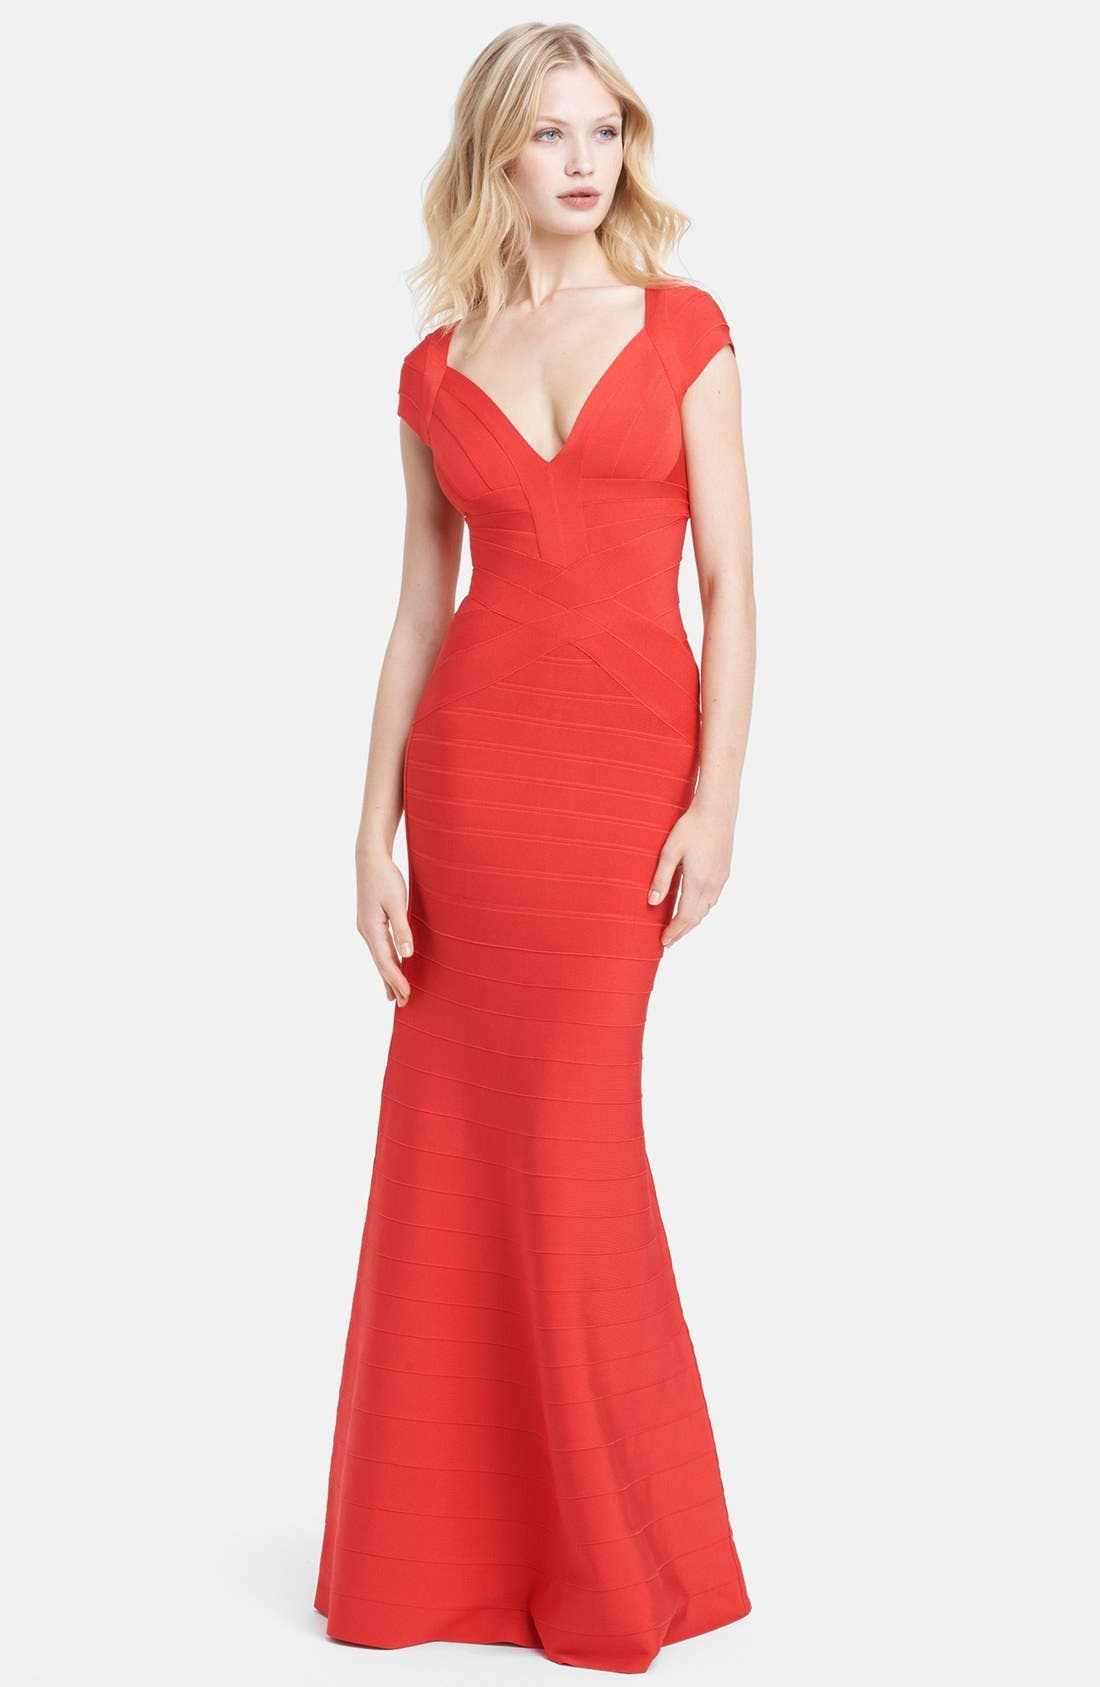 Alternate Image 1 Selected - Herve Leger Cap Sleeve Bandage Gown